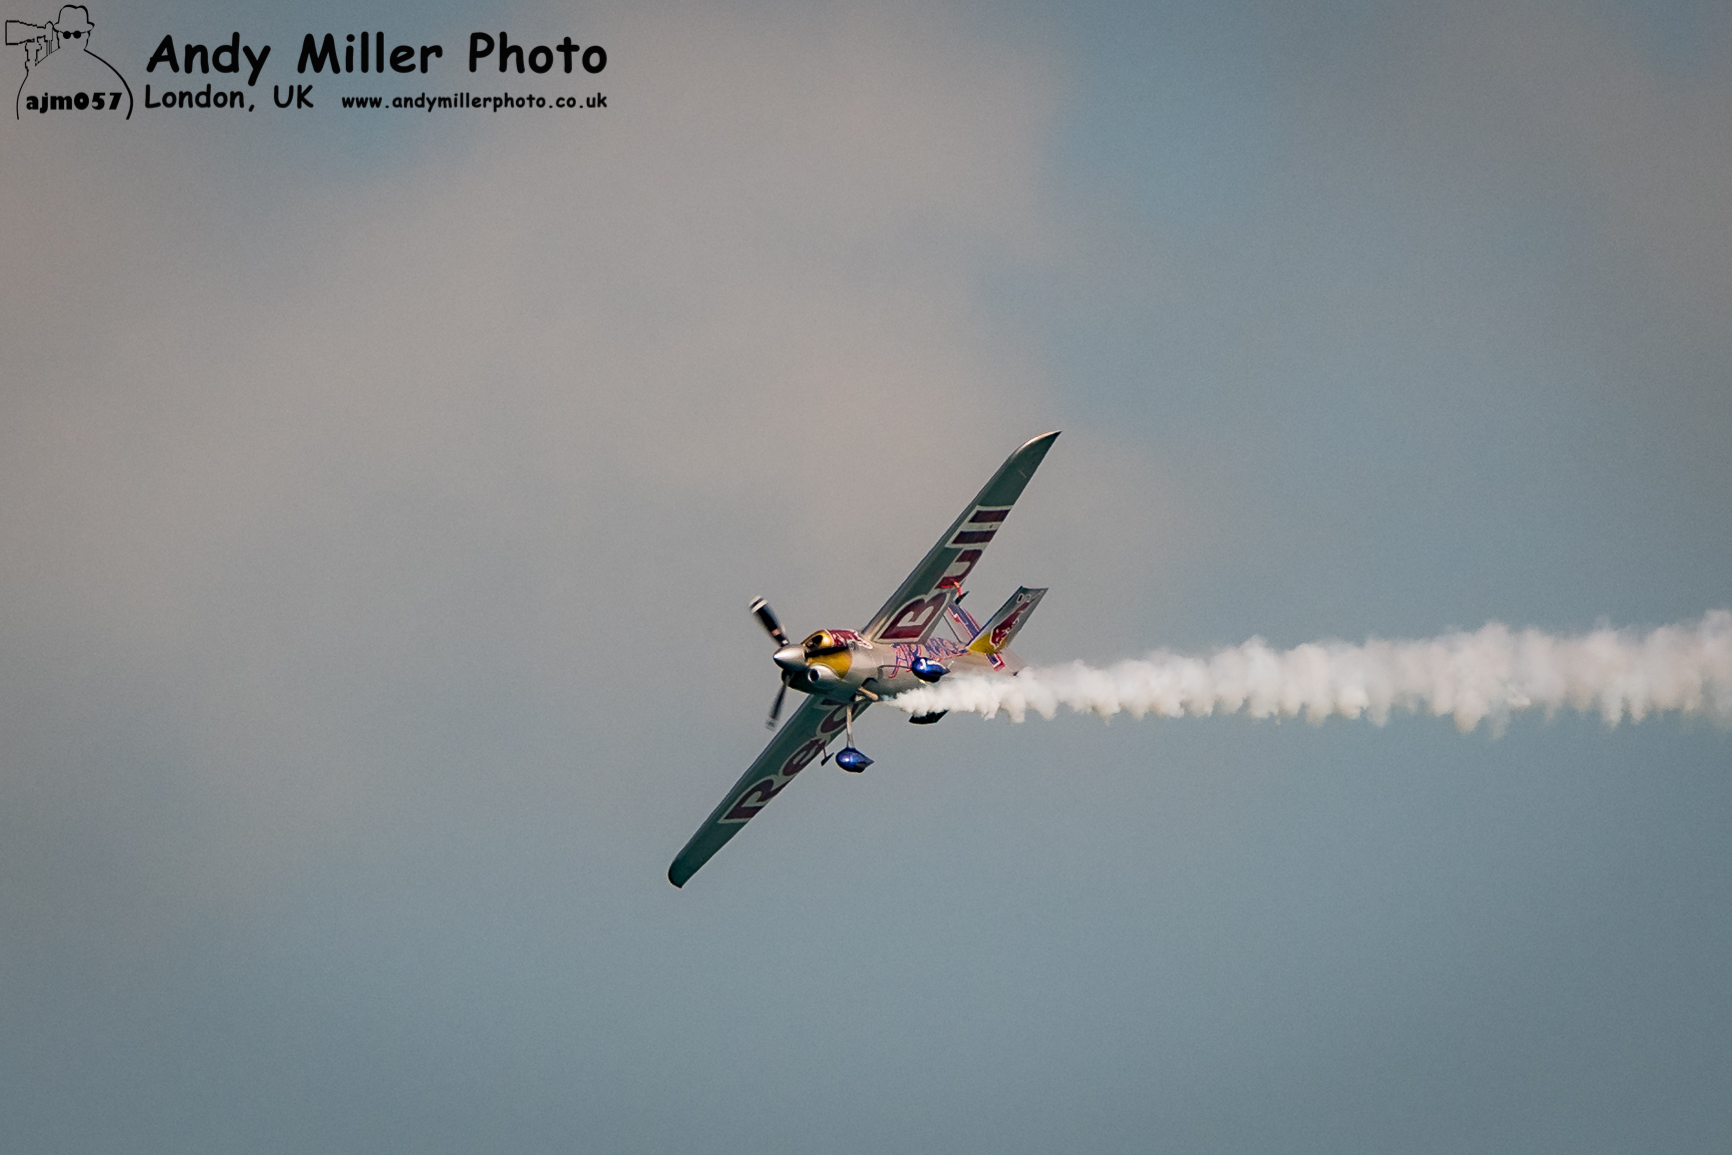 First outing with D850+300mm/4 0 PF - Red Bull Air Race